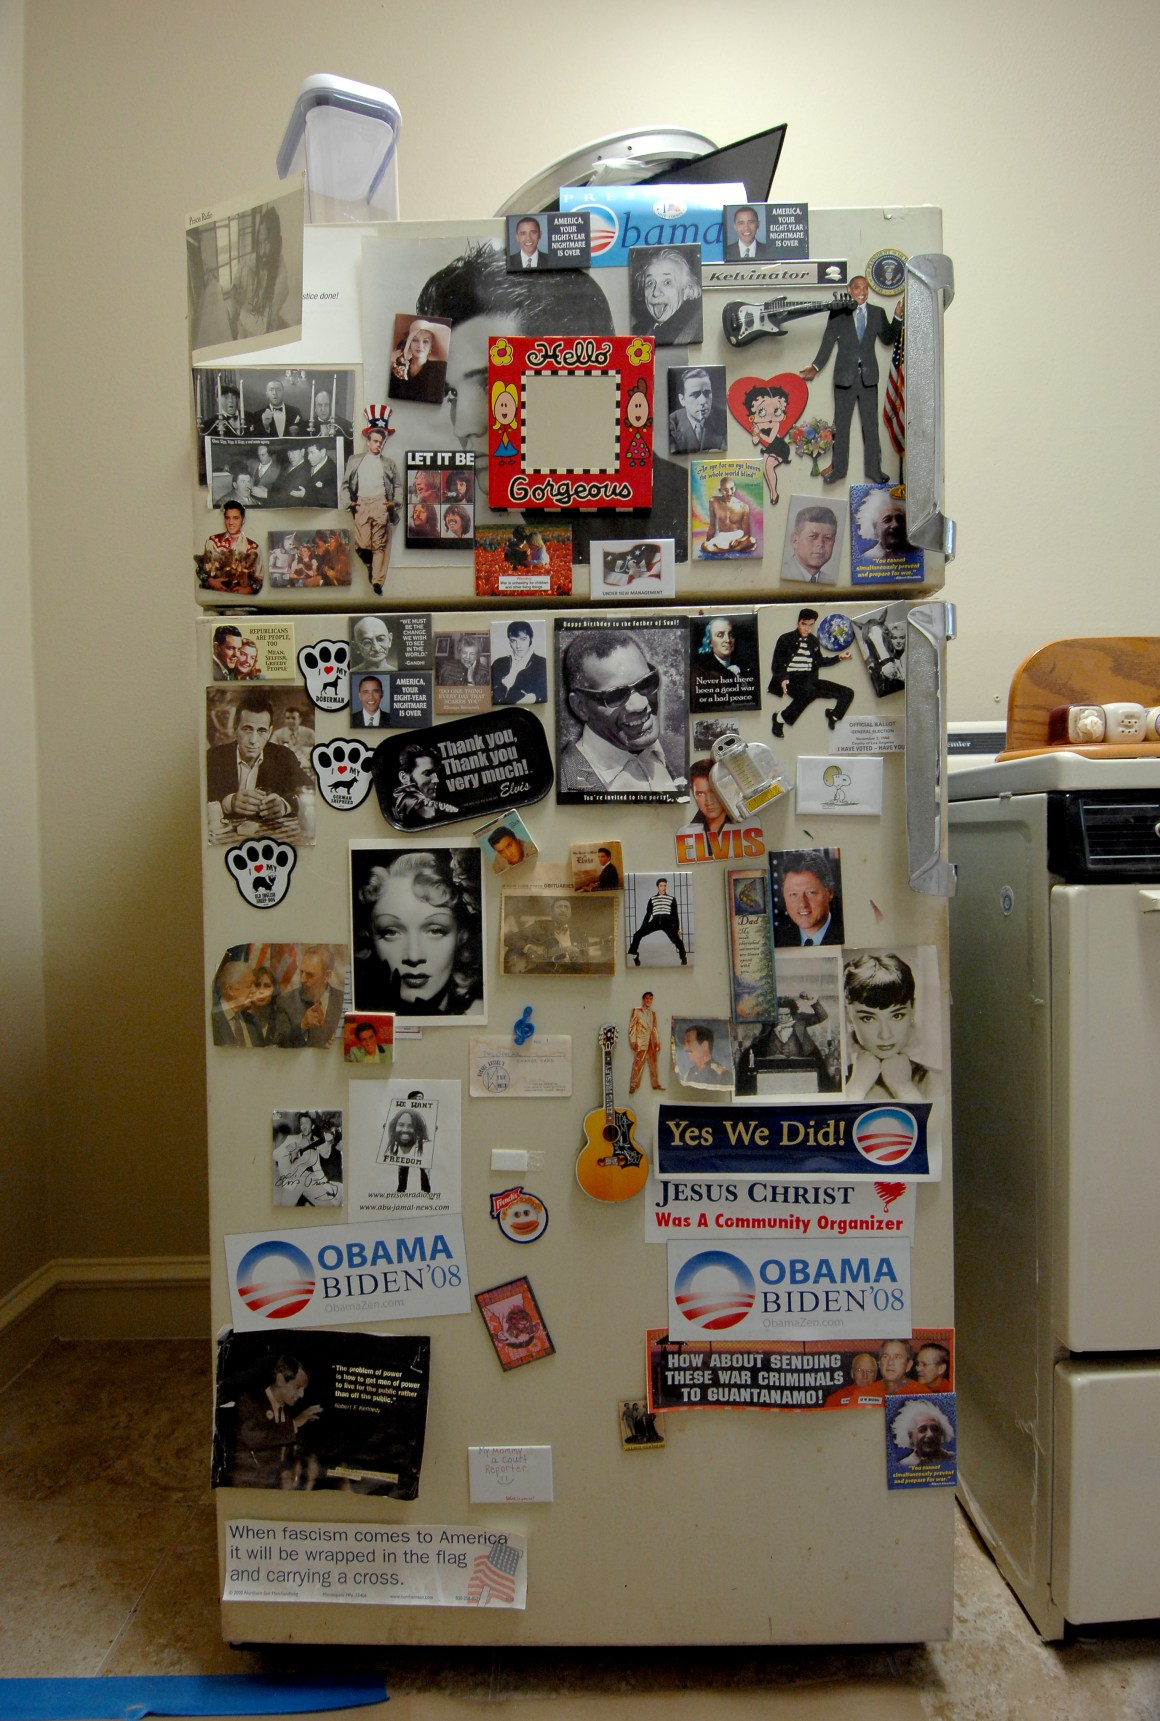 The music mogul's fridge, covered in magnet decorations